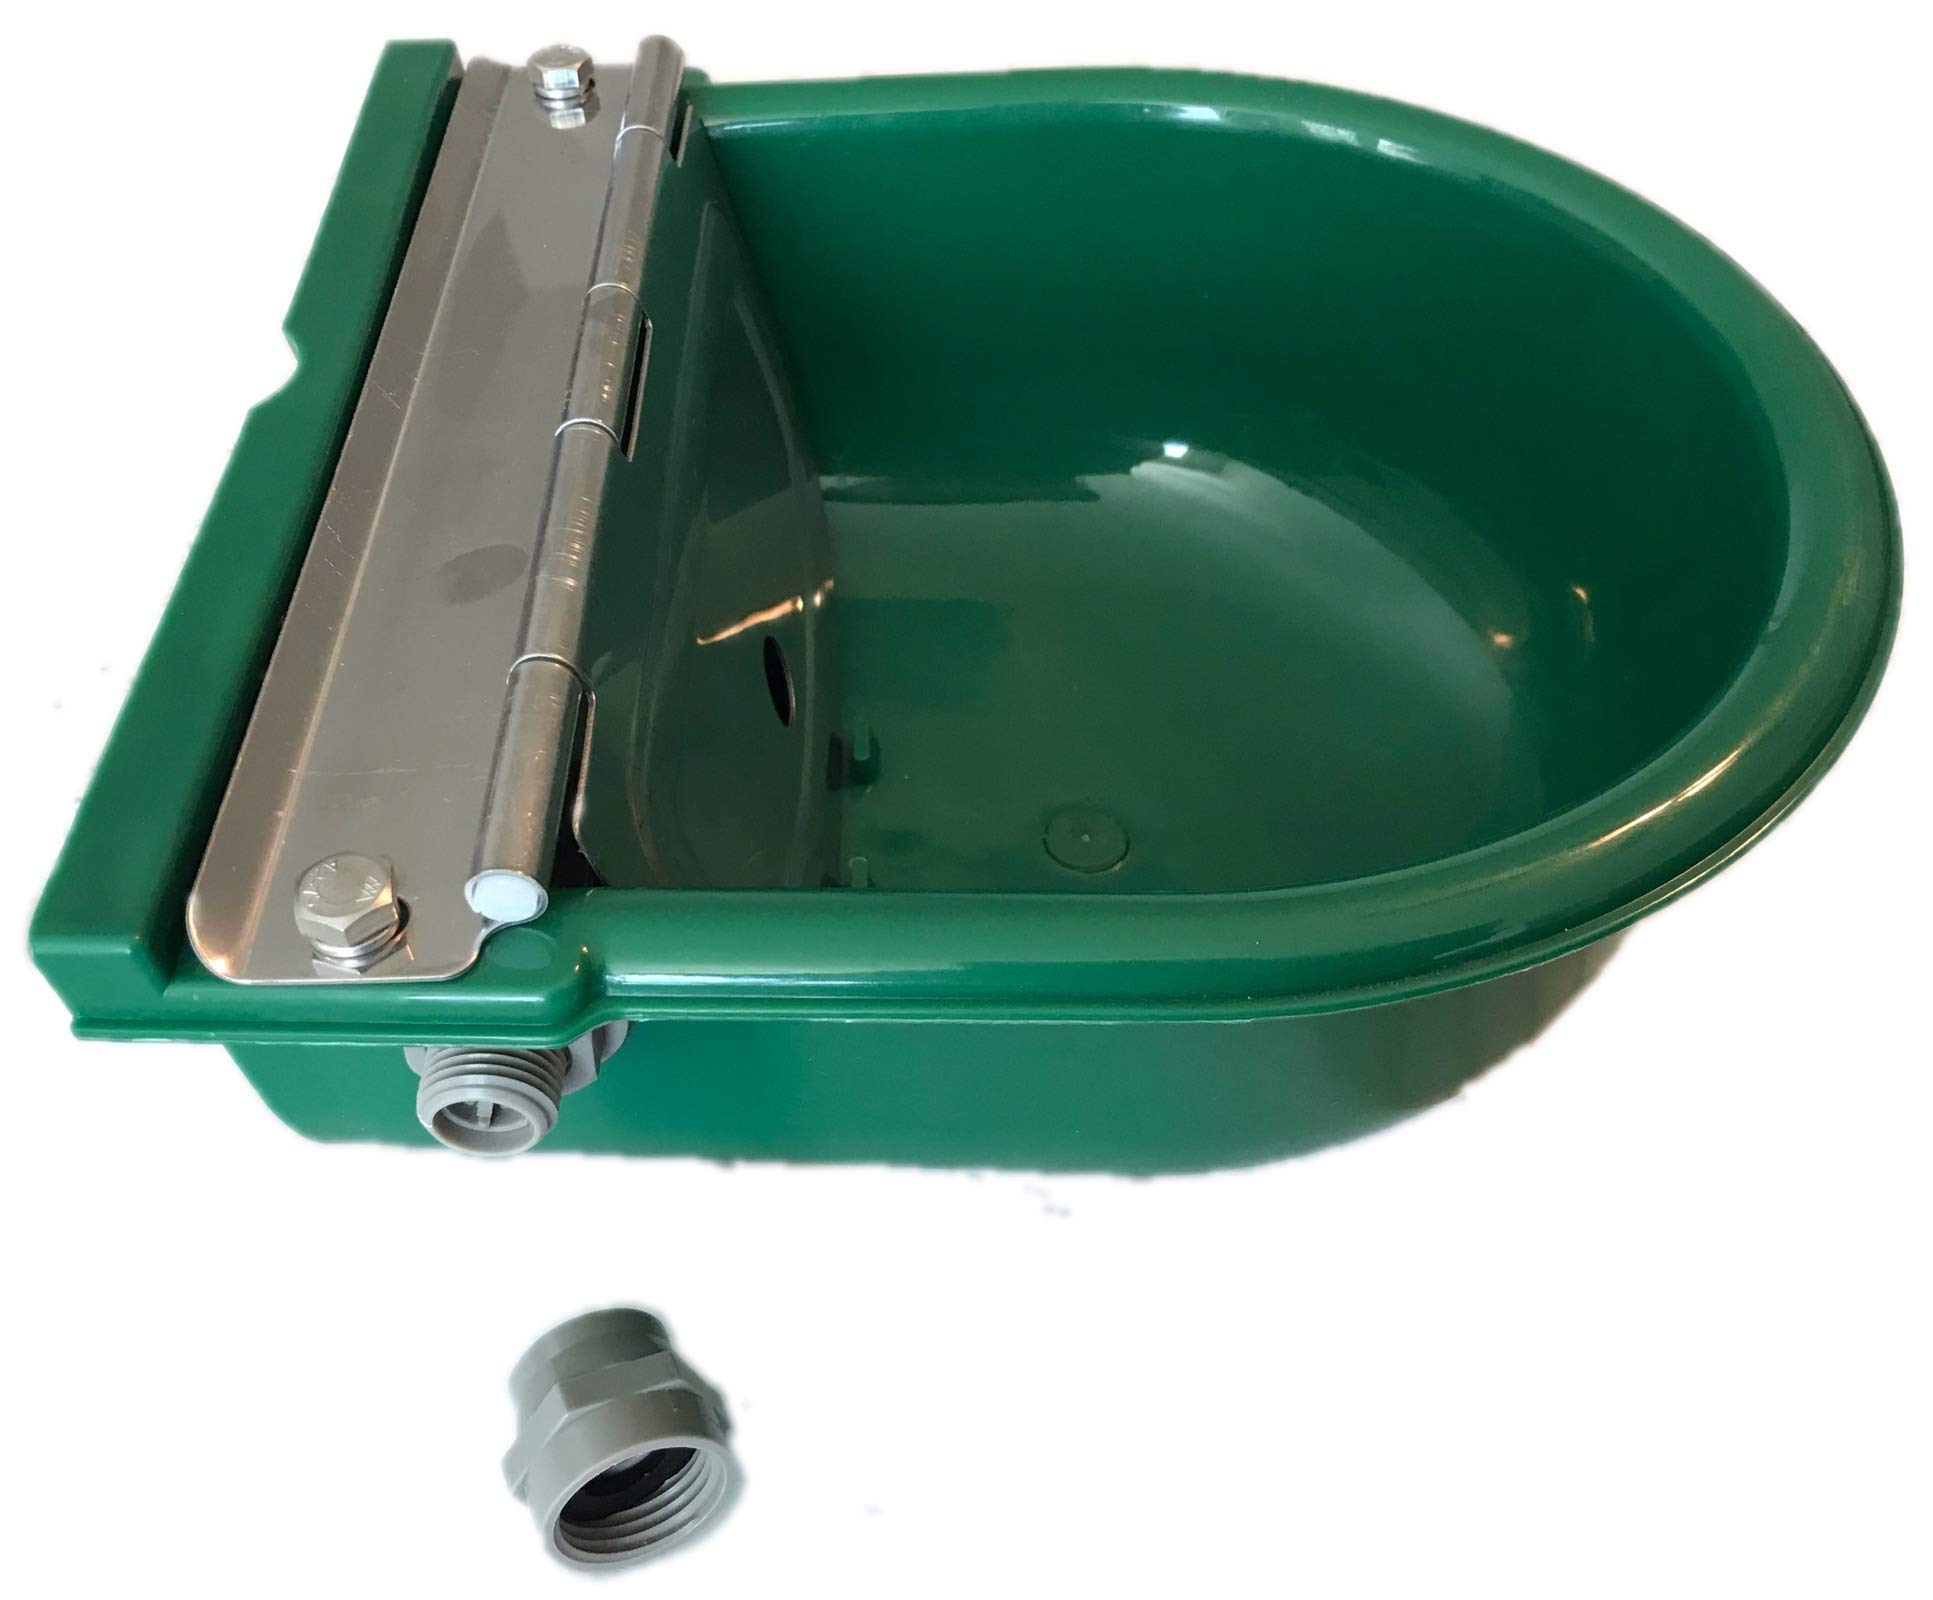 rabbitnipples.com Large Automatic Waterer for Horses, Cows, Goats and Other Live Stock 1